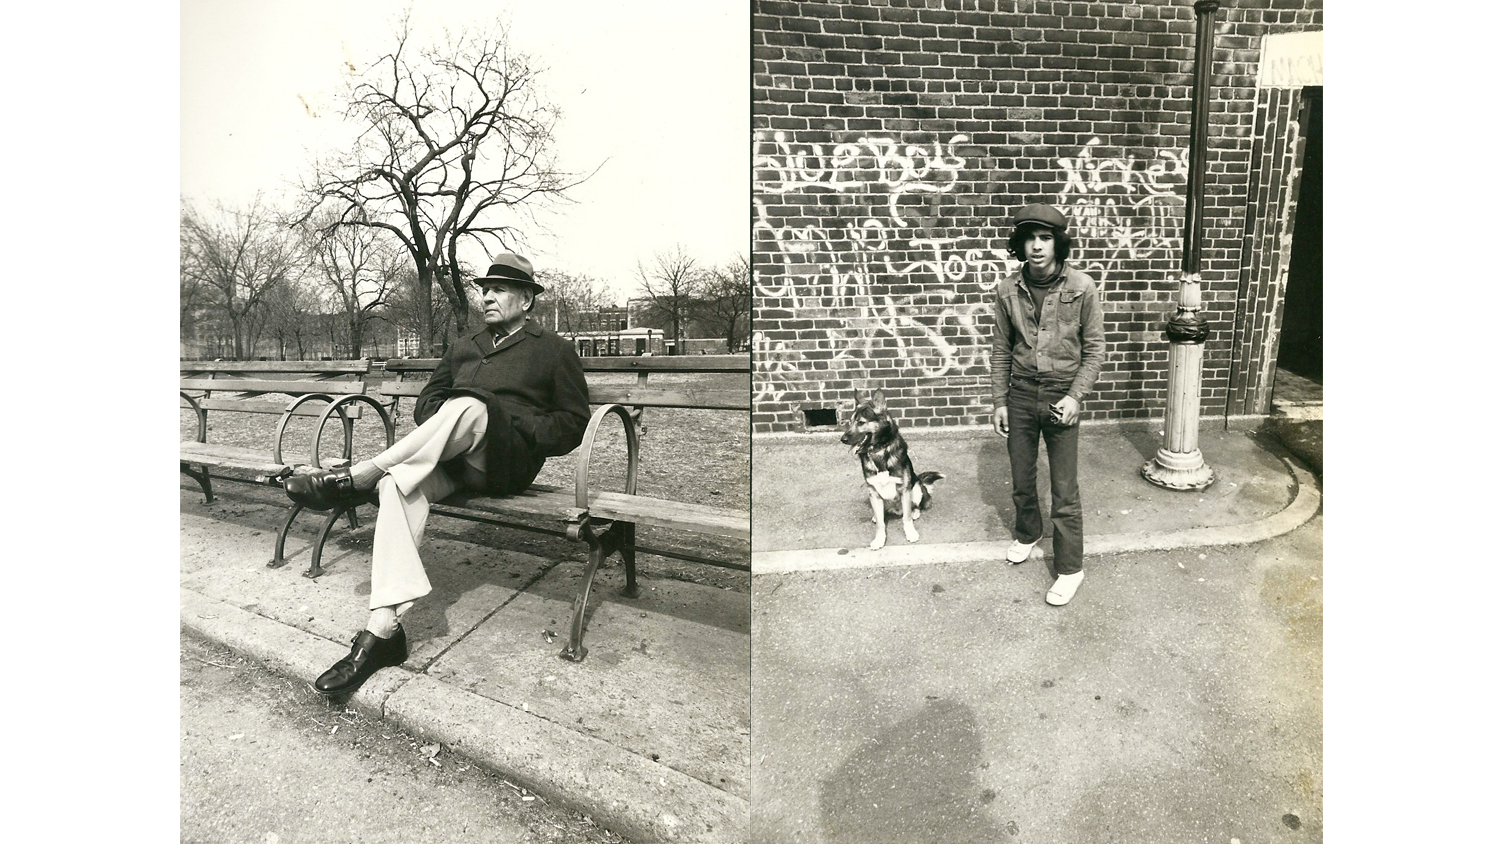 L: Tompkins Square Park, 1981. R: Man and Dog, Tompkins Square Park, 1981